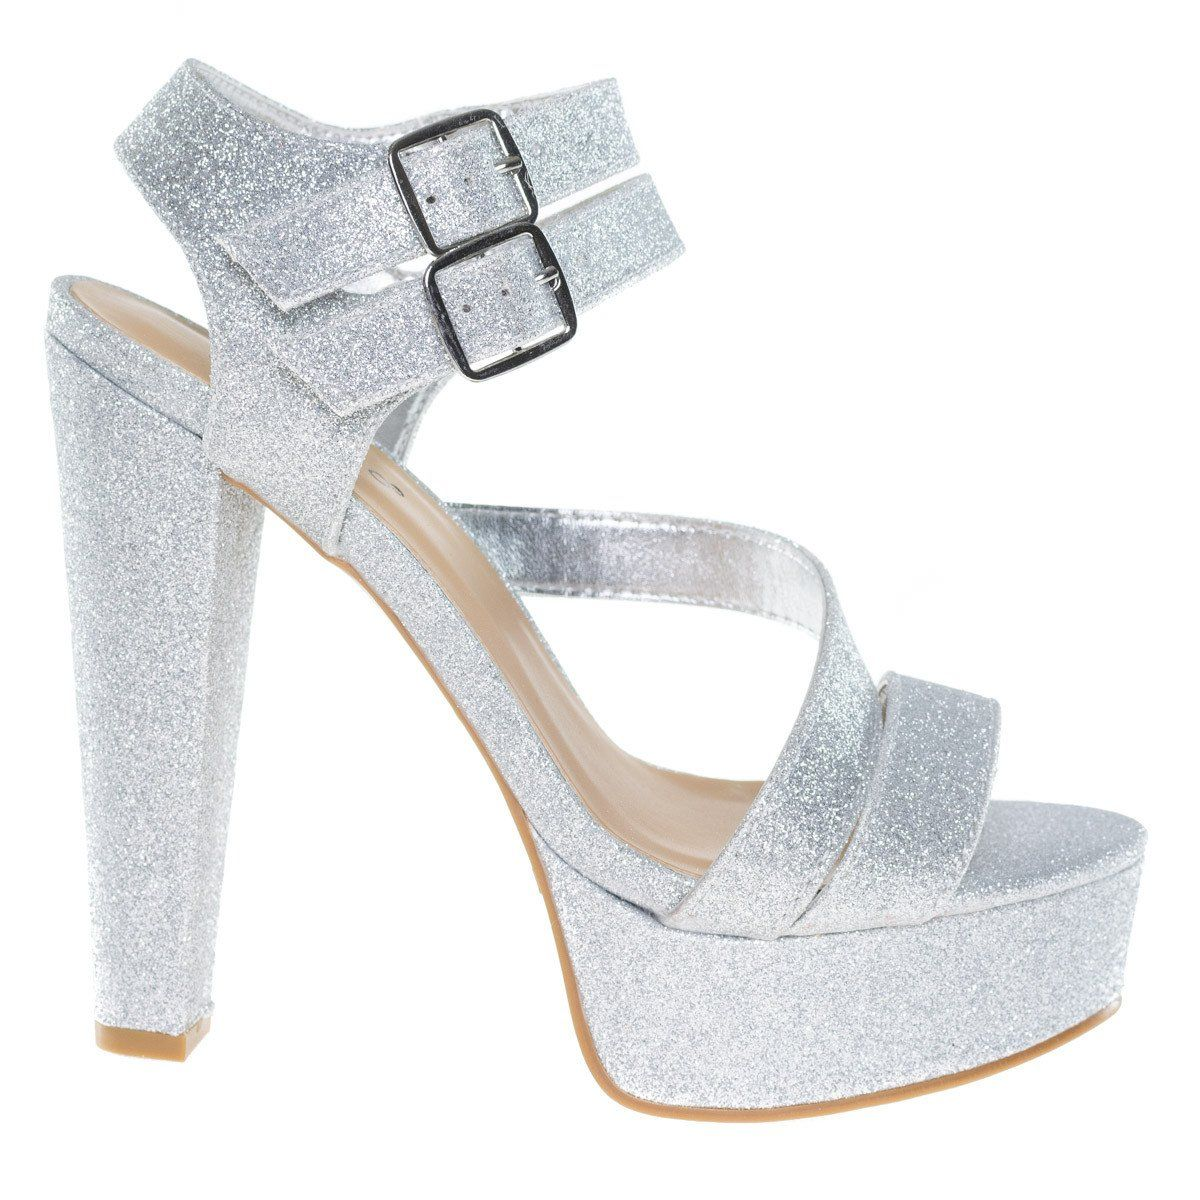 e2fbc33dcd Name - Clarice42S Brand: Bamboo Colors Available: Blush Velvet (listed as  beige), Black, Gold Glitter, Silver Glitter Features: These classic high  heel ...